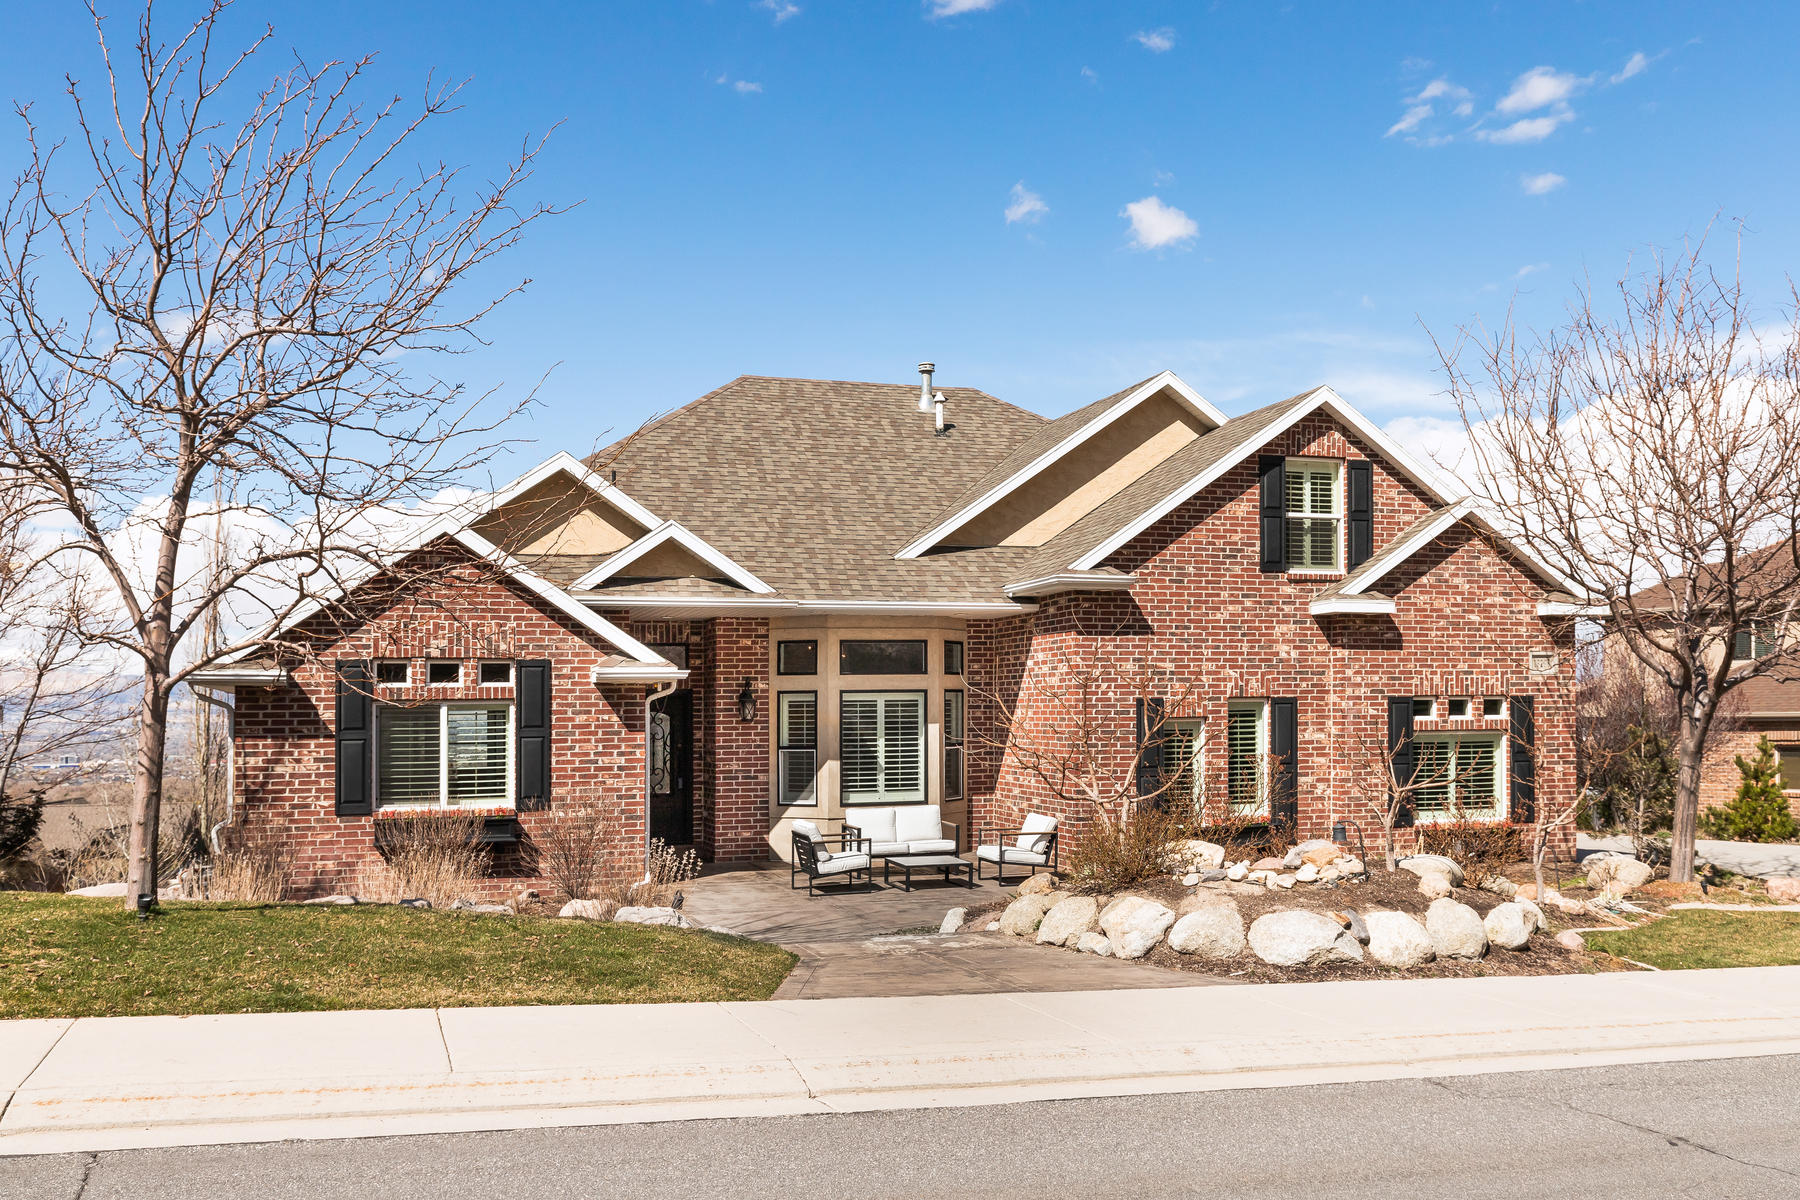 Single Family Homes for Sale at Clean, Crisp, Bright and Open 13298 Springdale Way Draper, Utah 84020 United States